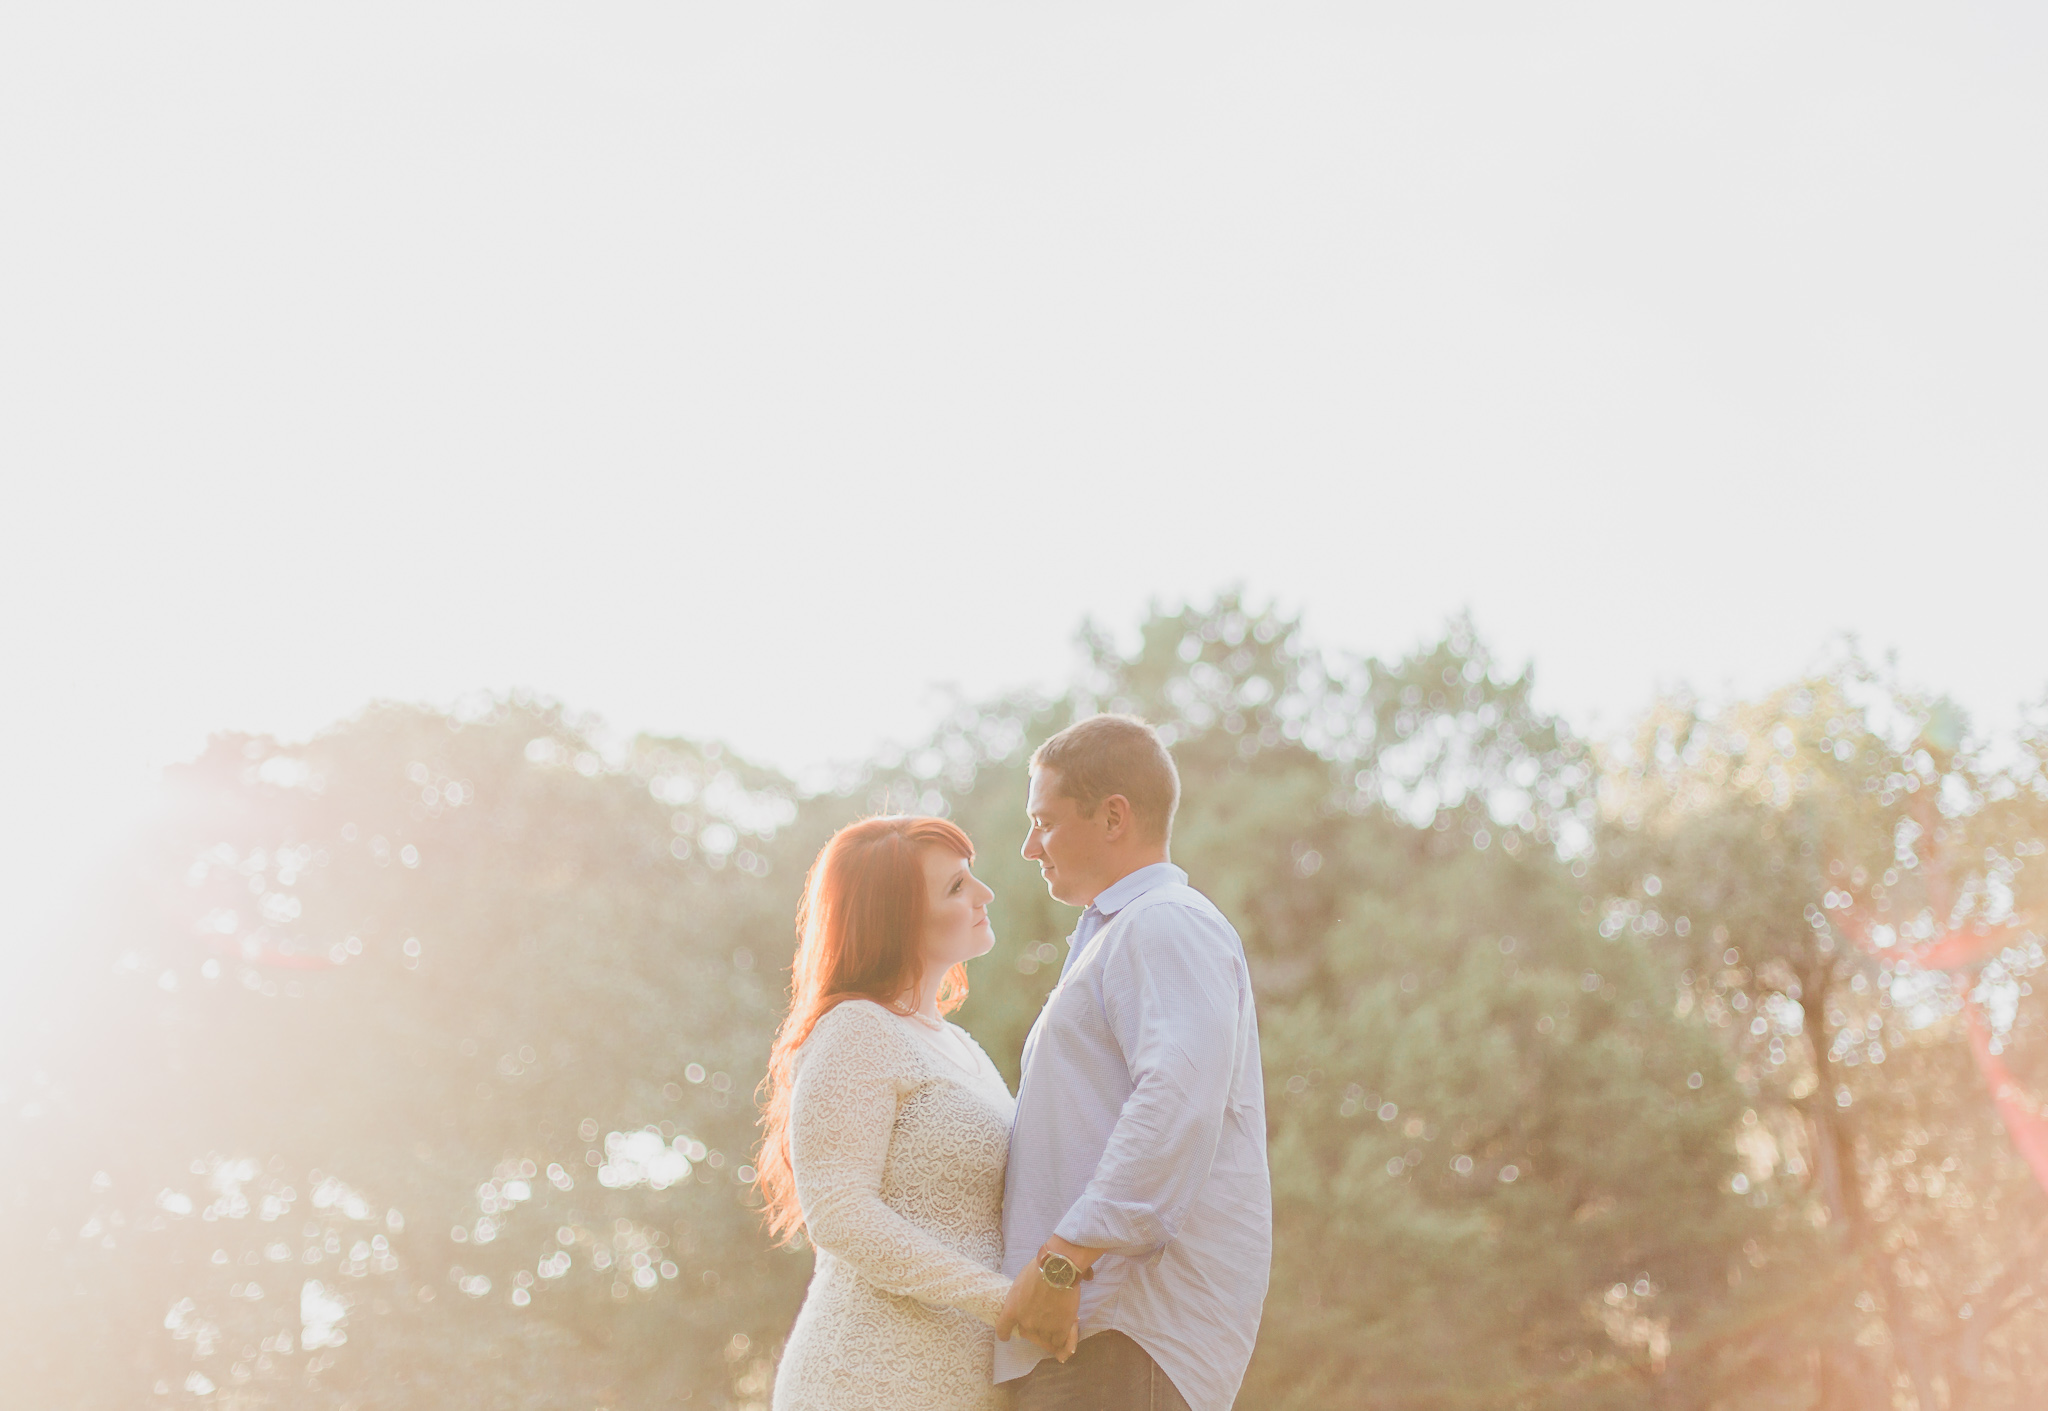 engagement session photos in eden gardens state park